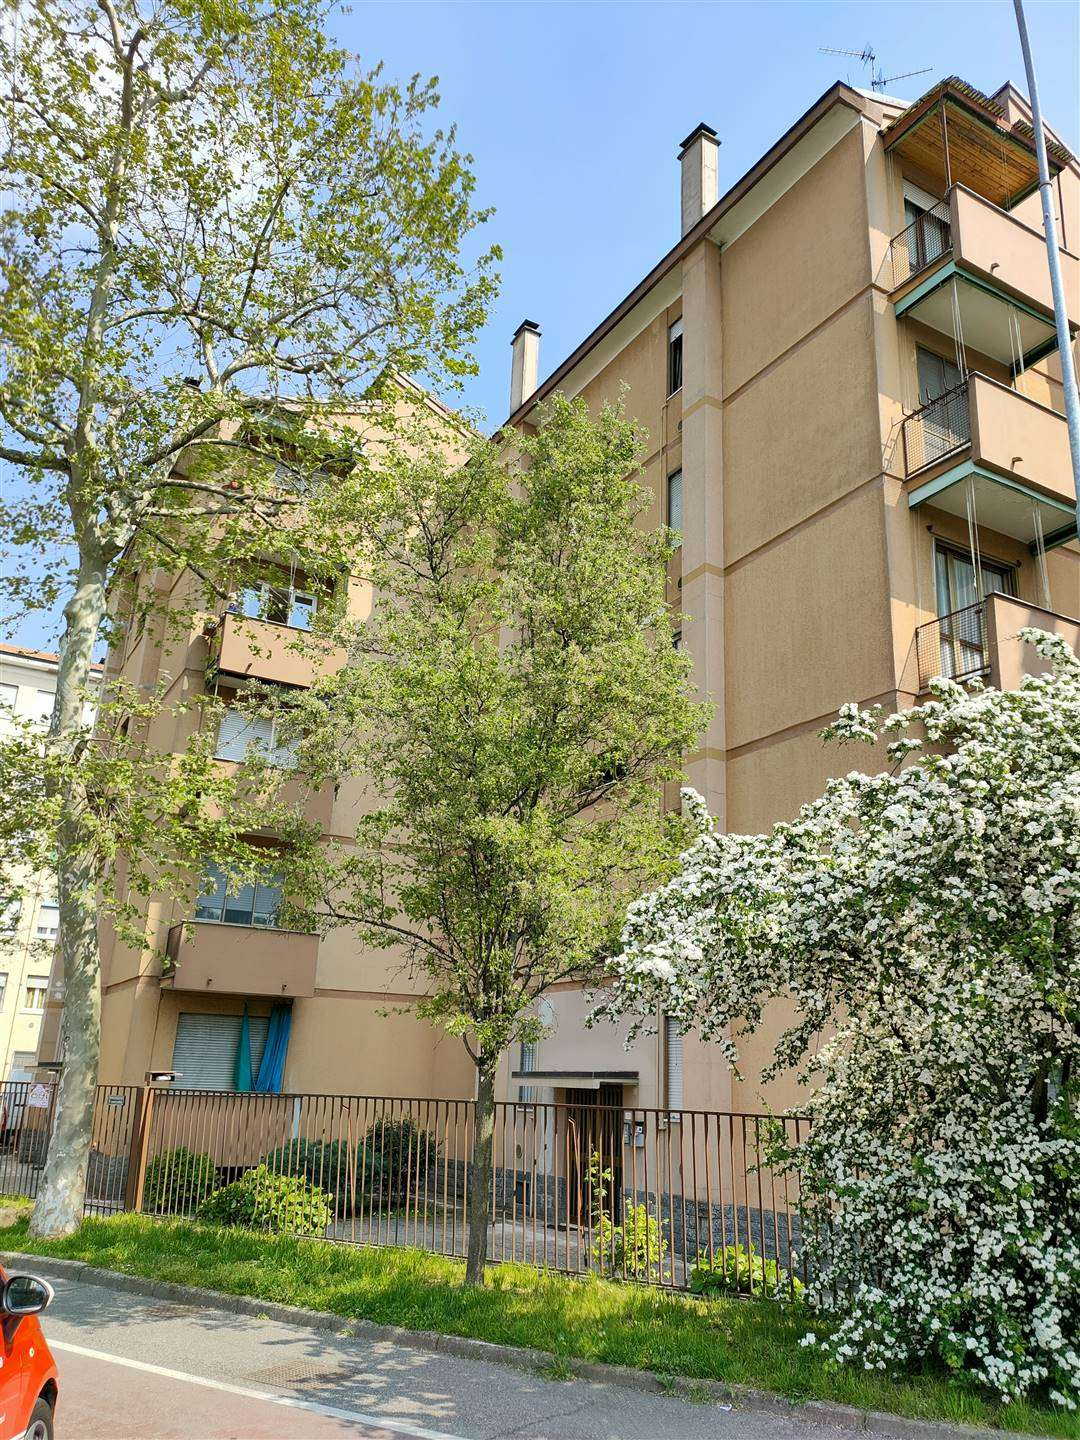 SAN FEREOLO, LODI, Apartment for sale of 80 Sq. mt., Good condition, Heating Individual heating system, Energetic class: F, Epi: 265,12 kwh/m2 year,